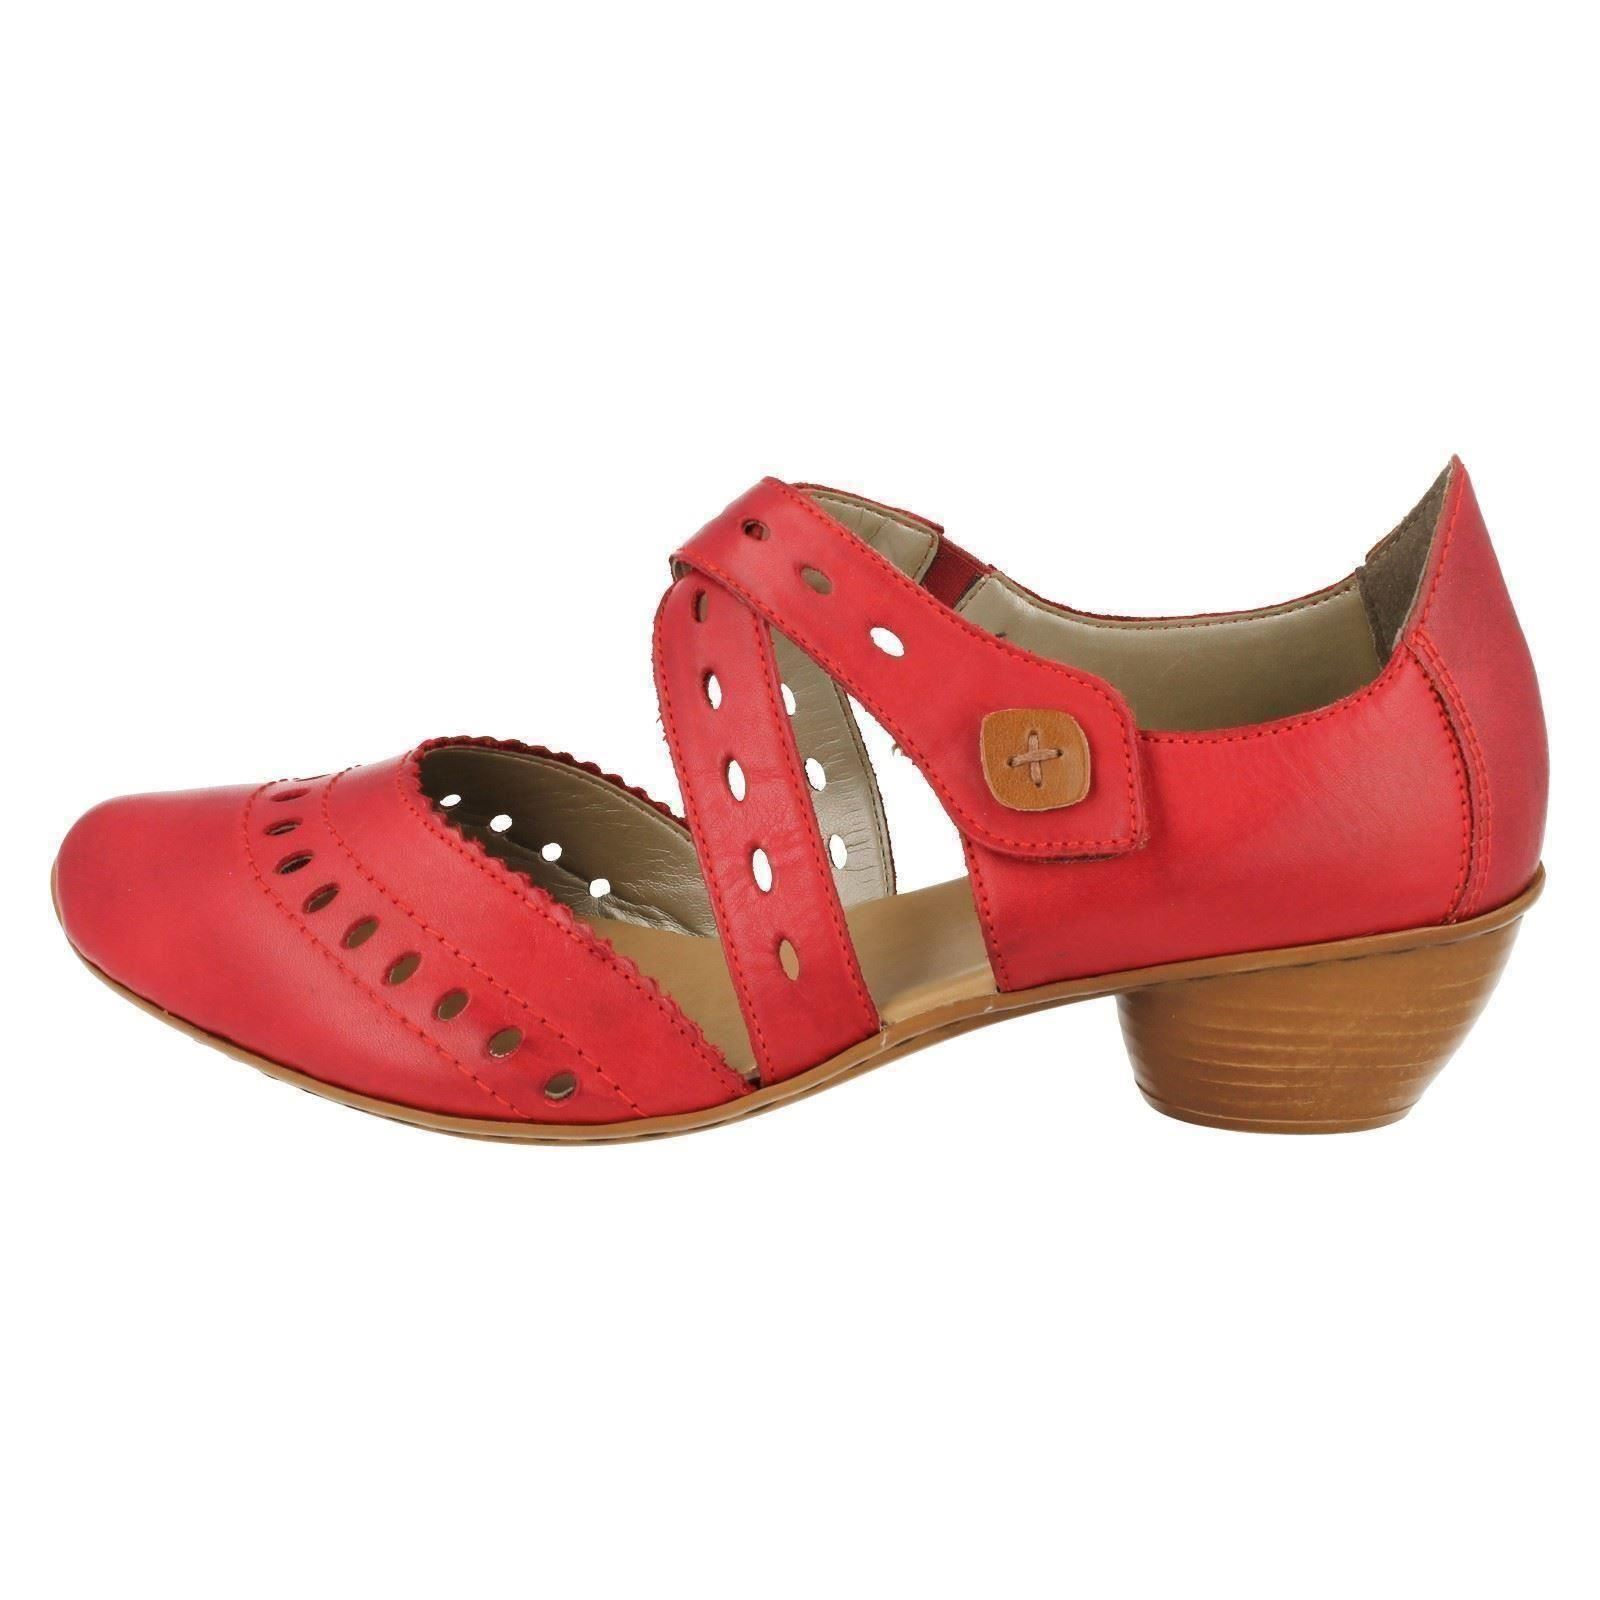 rieker shoes ladies-rieker-shoes-style-43703 rtfhtek